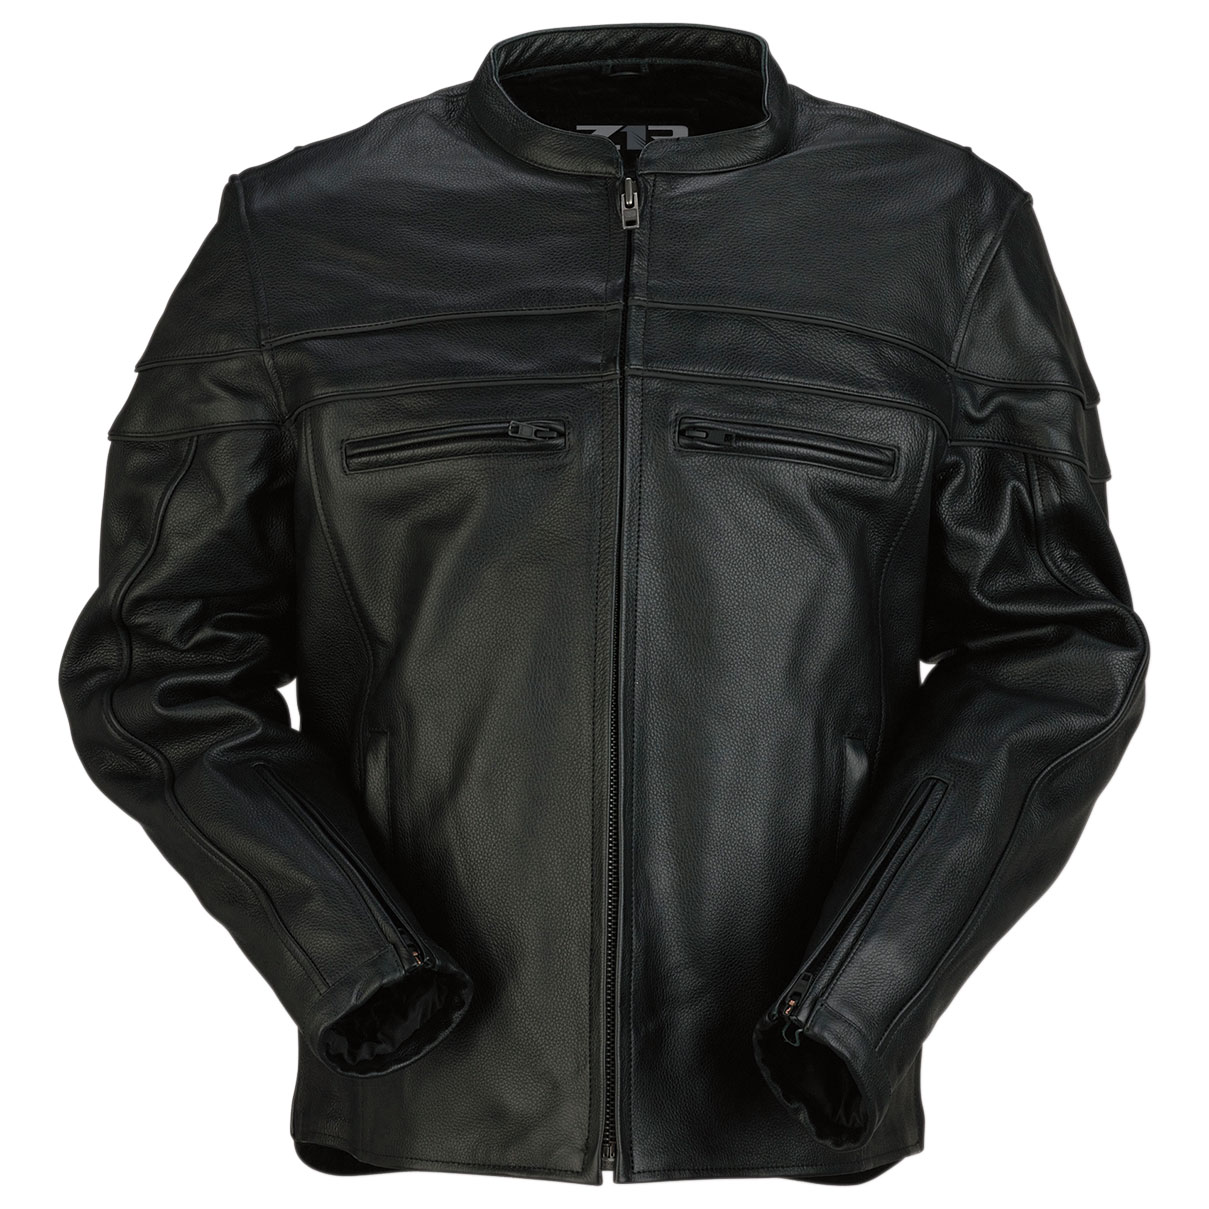 Z1R Men's Bastion Black Leather Jacket